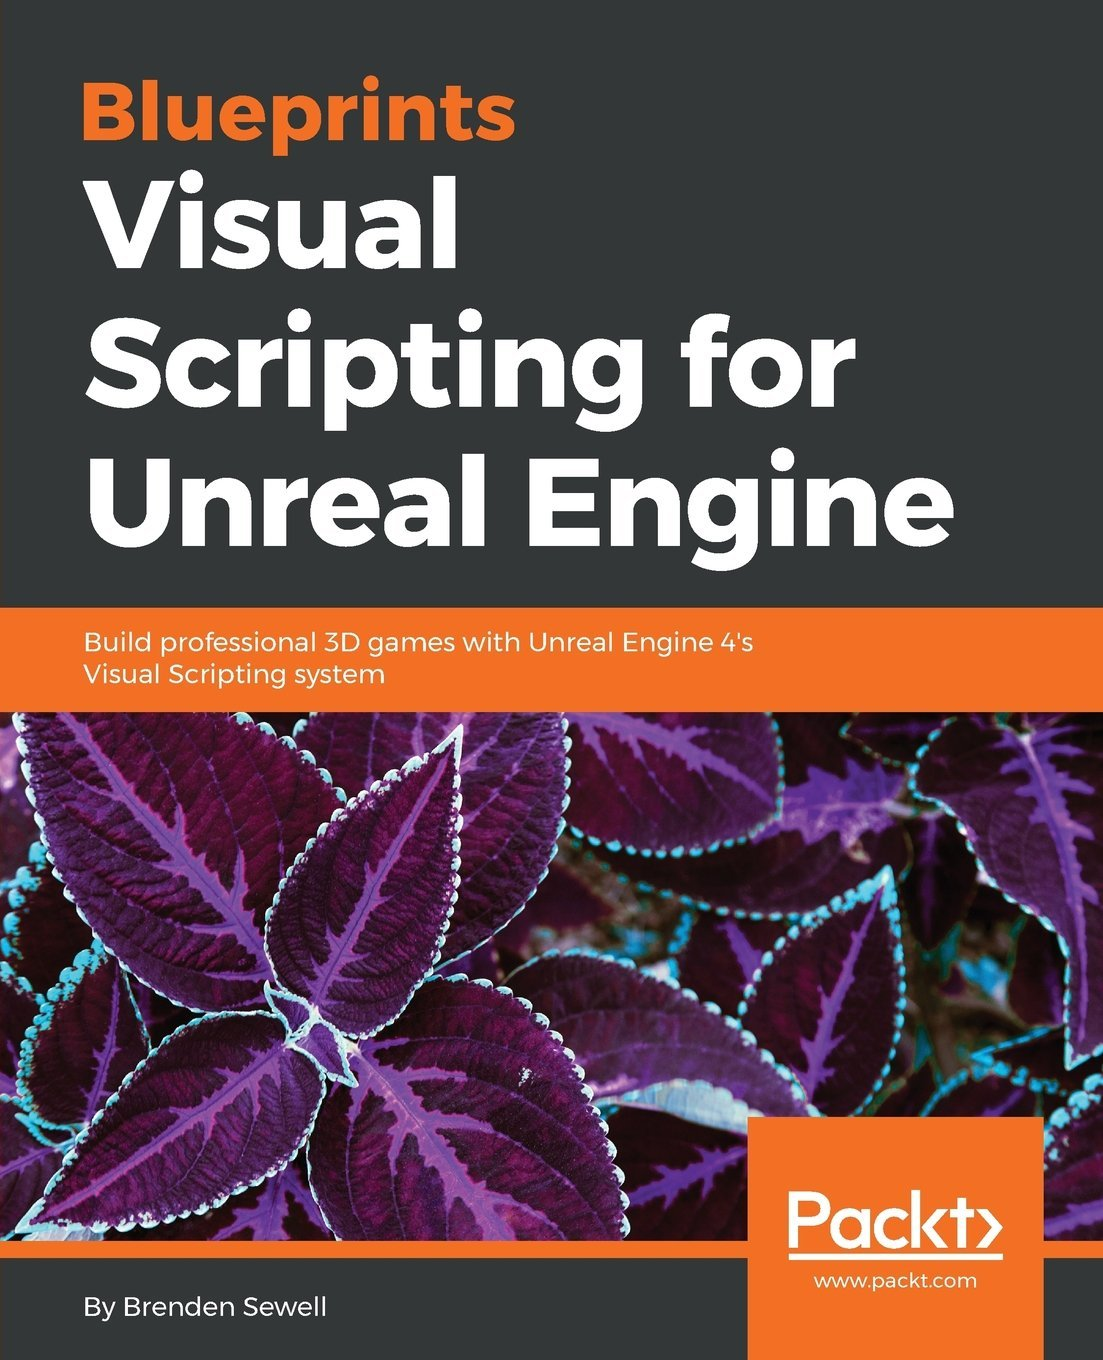 Blueprints visual scripting for unreal engine build professional 3d blueprints visual scripting for unreal engine build professional 3d games with unreal engine 4s visual scripting system brenden sewell 9781785286018 malvernweather Image collections